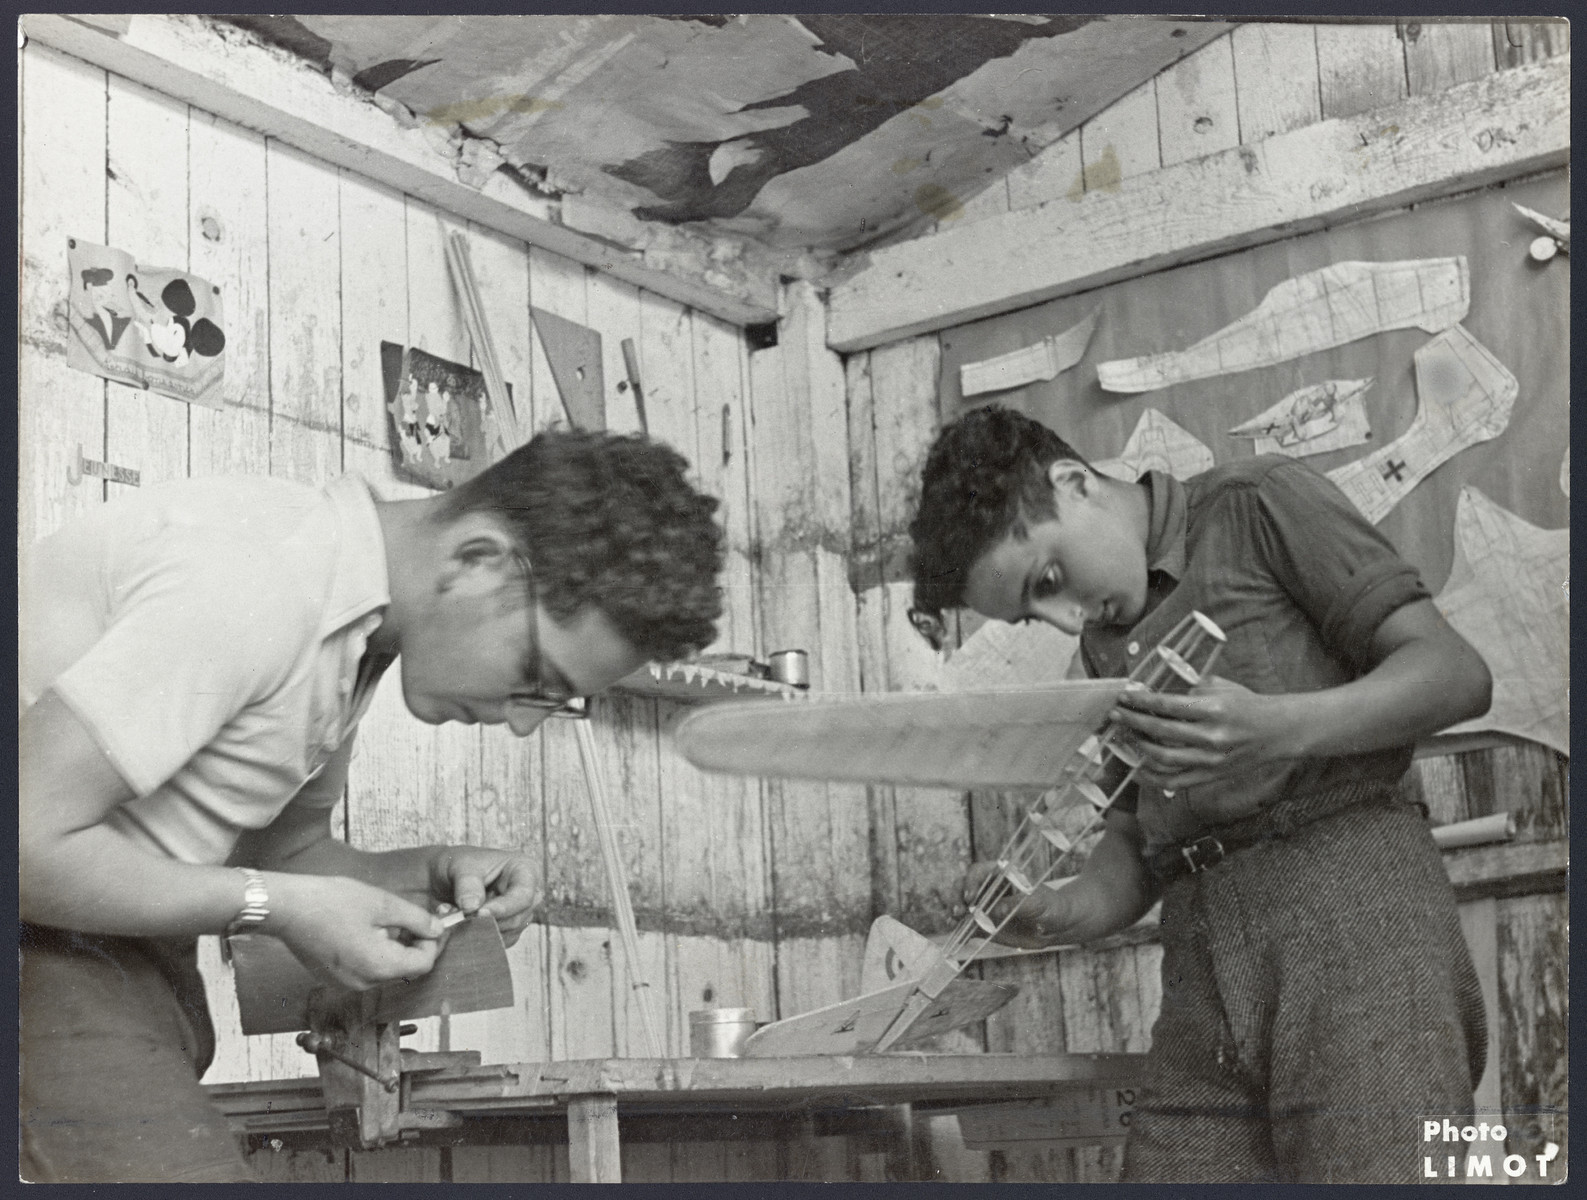 Two teeange boys build wooden airplane models in a postwar OSE children's home in France.